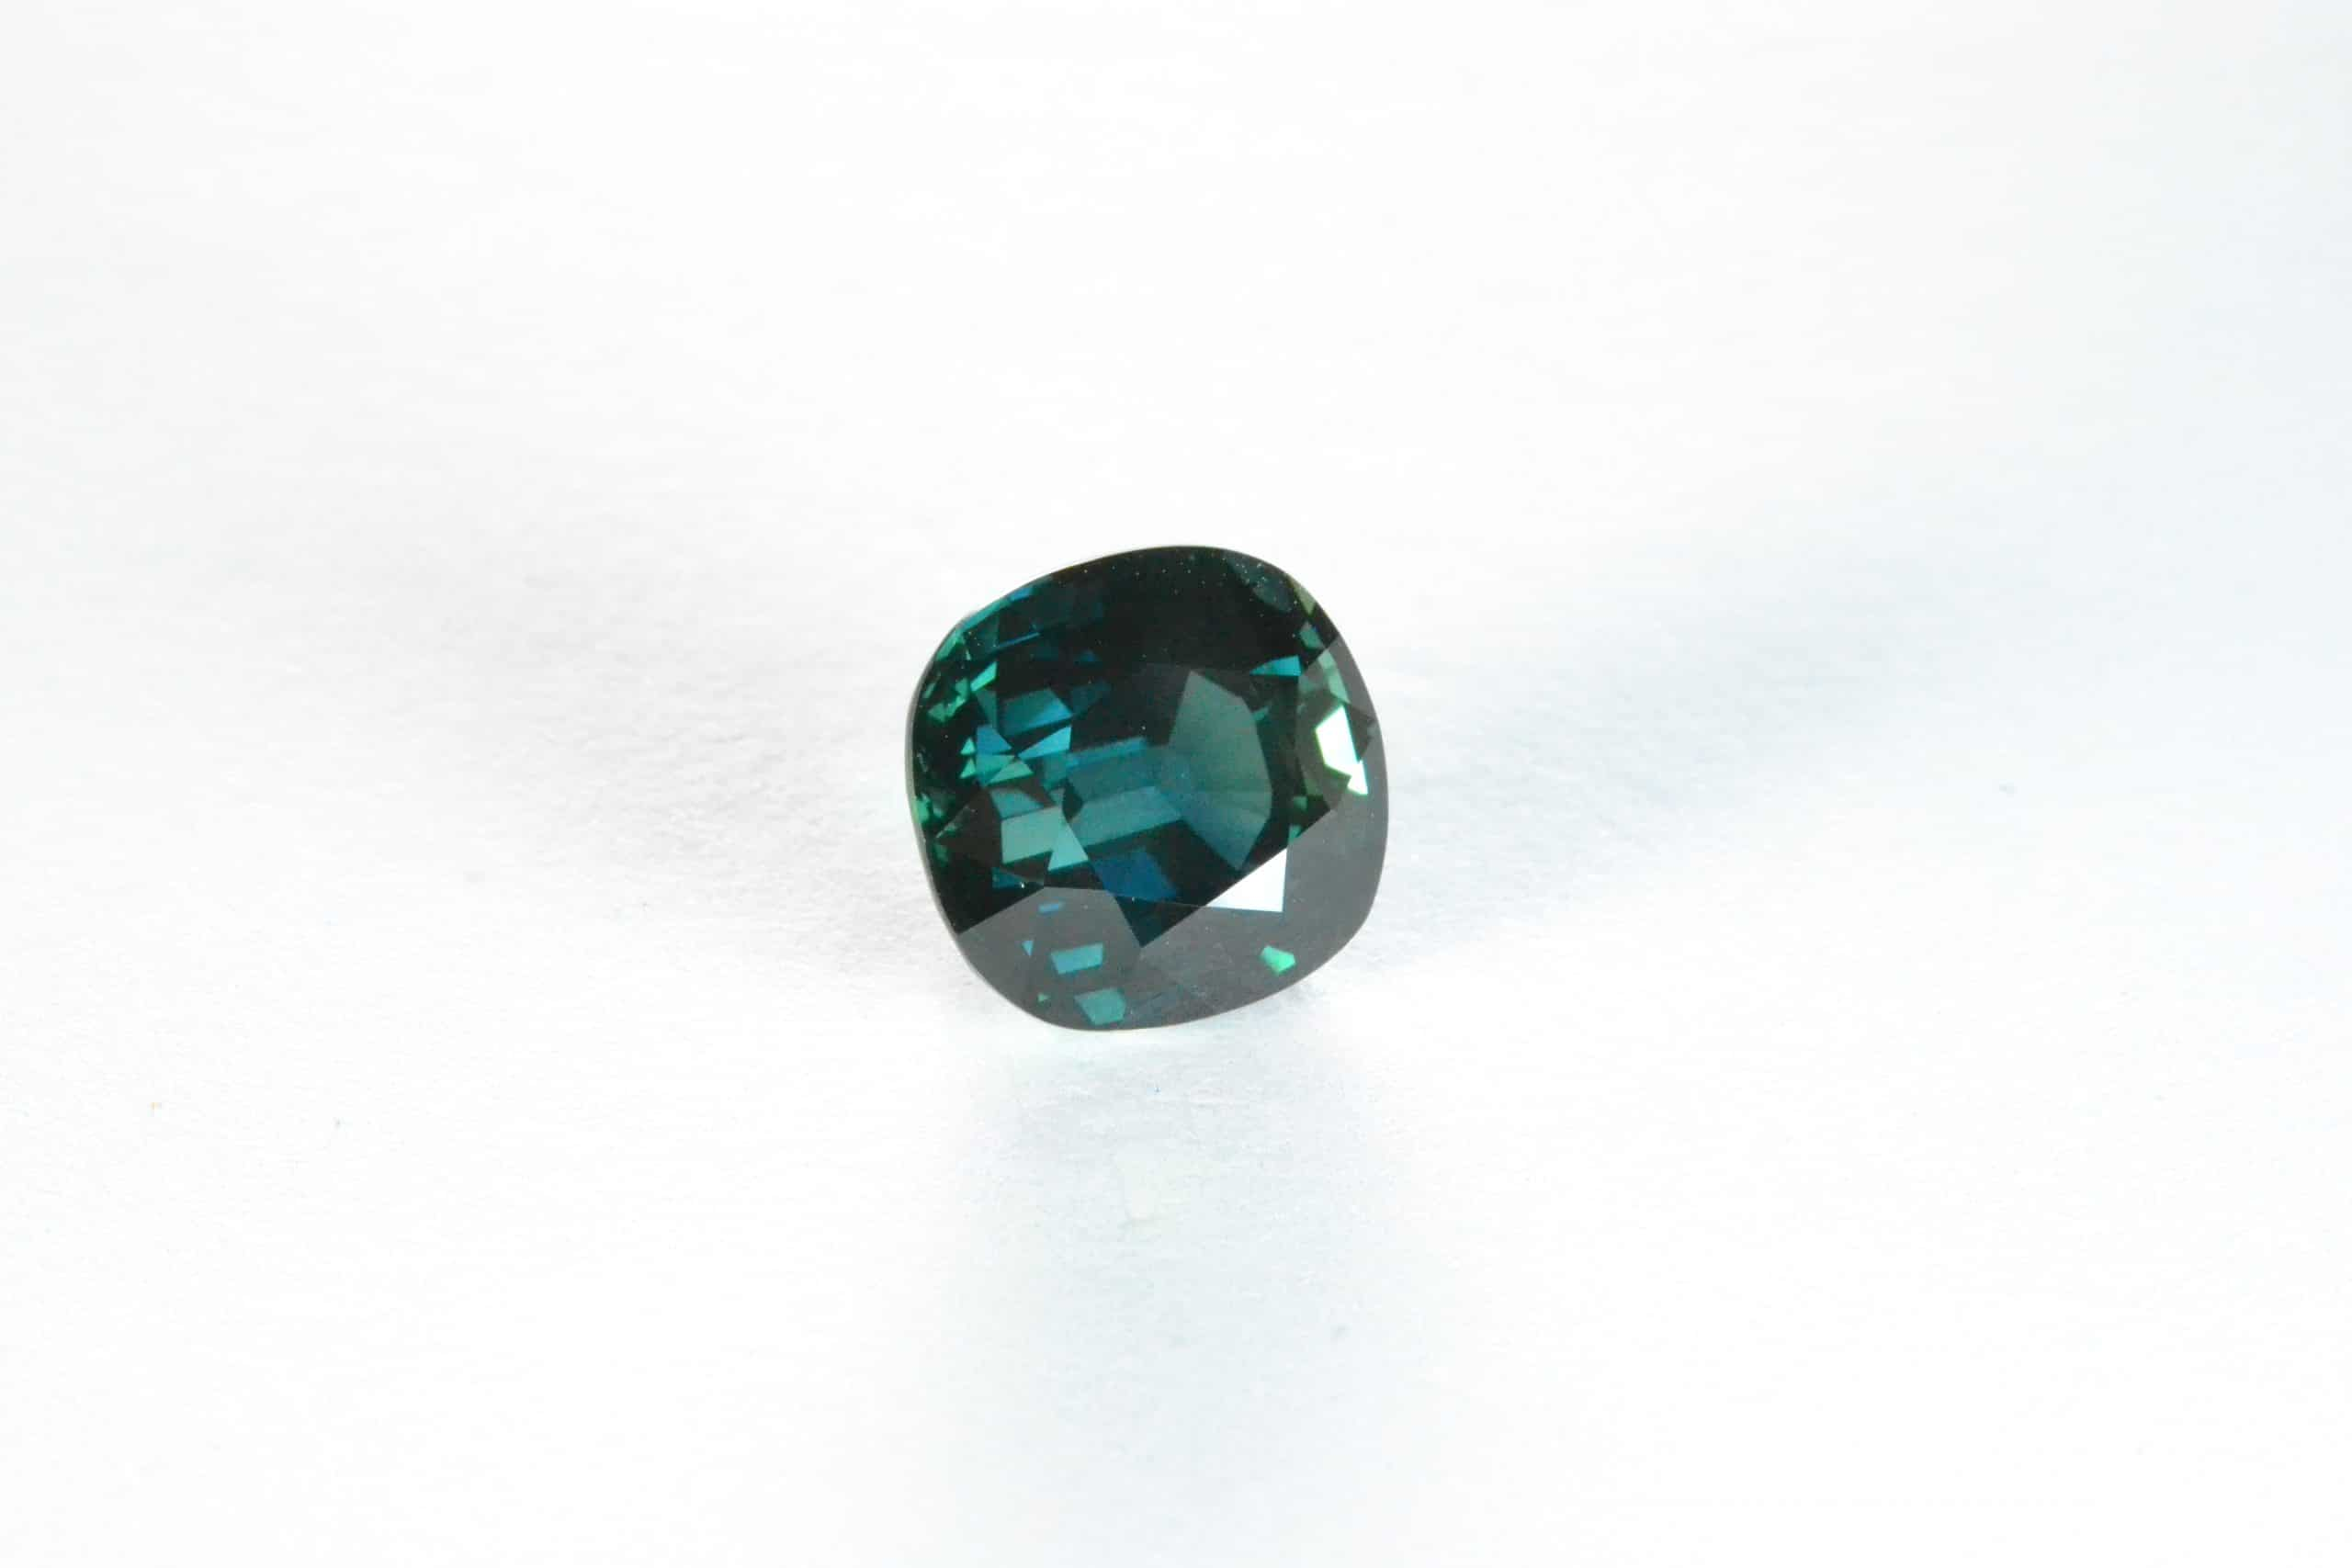 GEM SHOWCASE: Teal sapphires in magnificent blue-green reflect the ocean and land